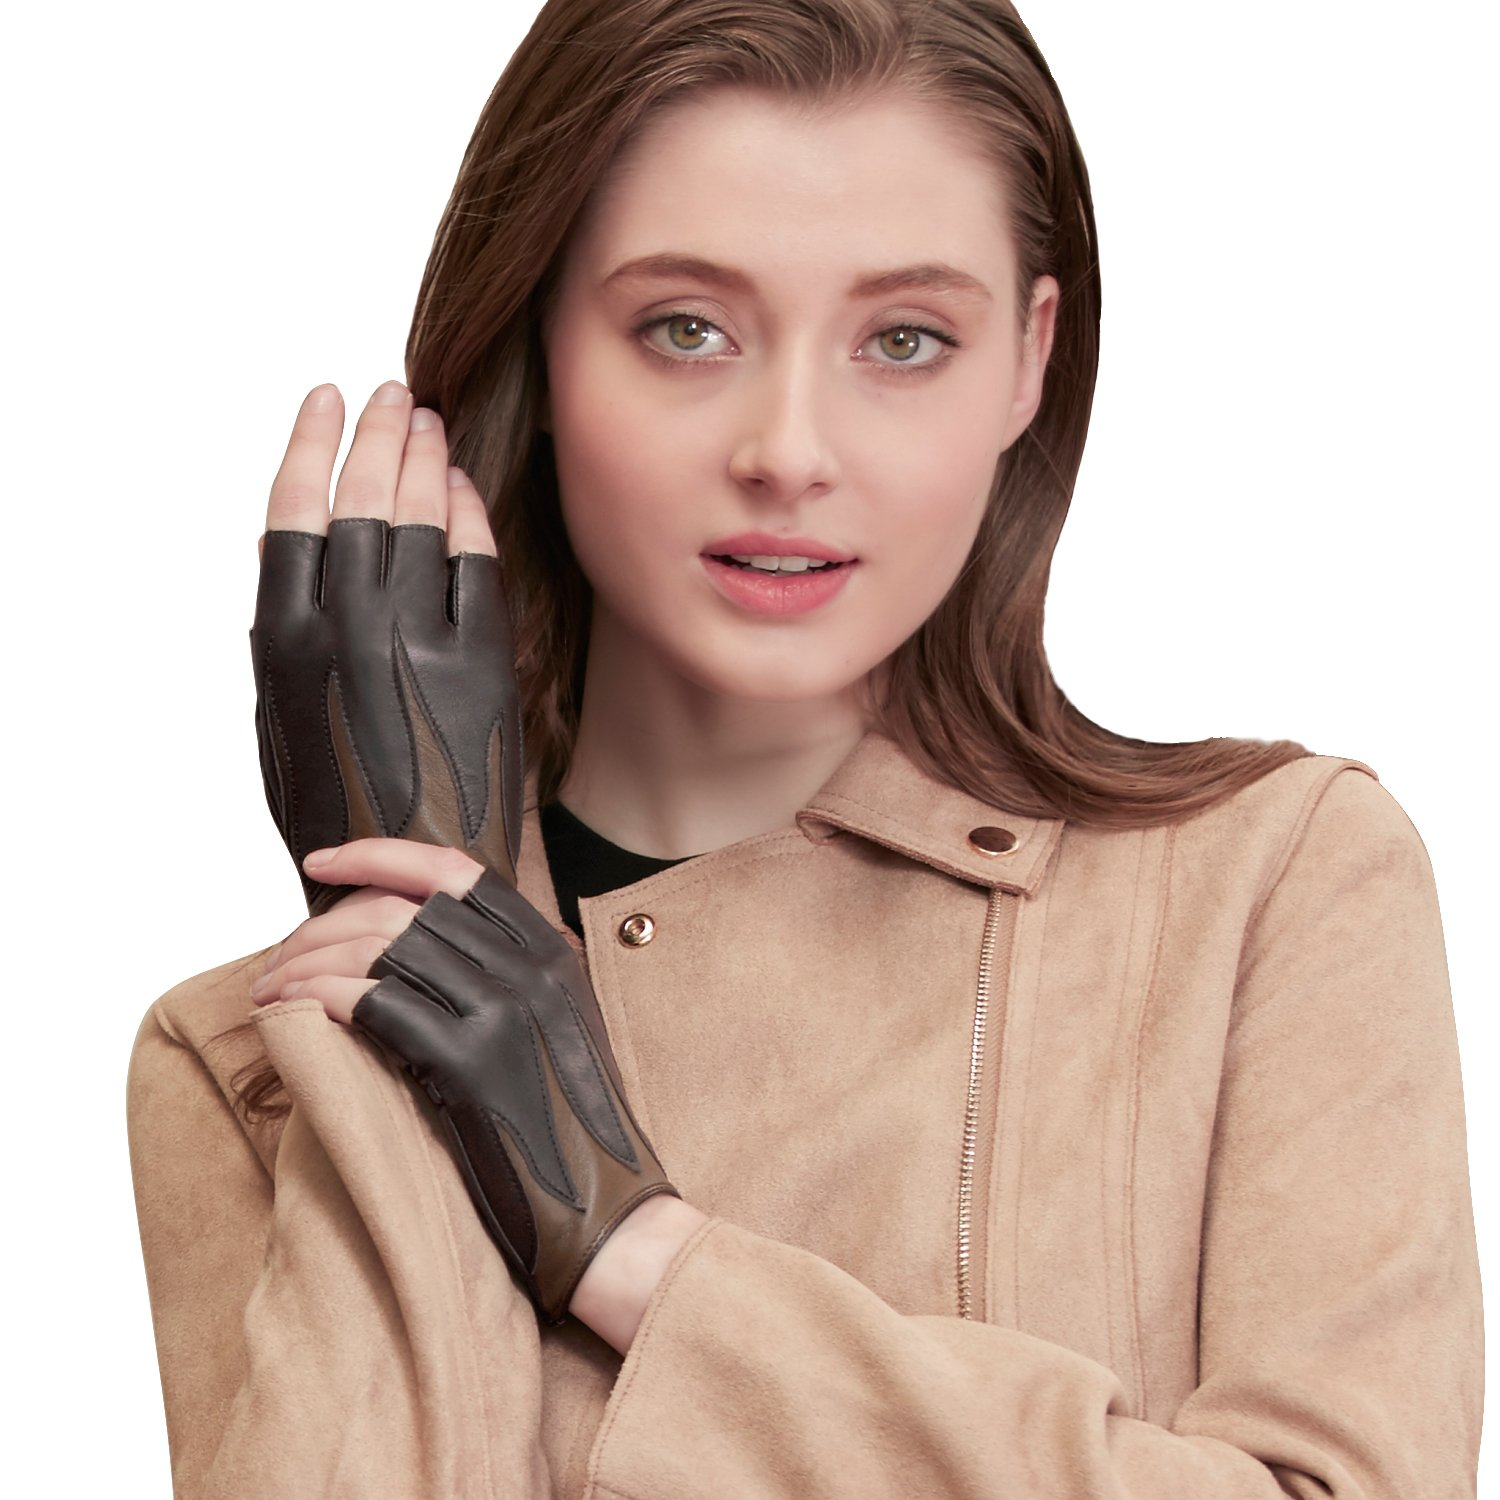 GSG Two-tone Fire Pattern Womens Fingerless Gloves Stylish Genuine Leather Half Finger Driving Gloves Party Dance Show Brown 7